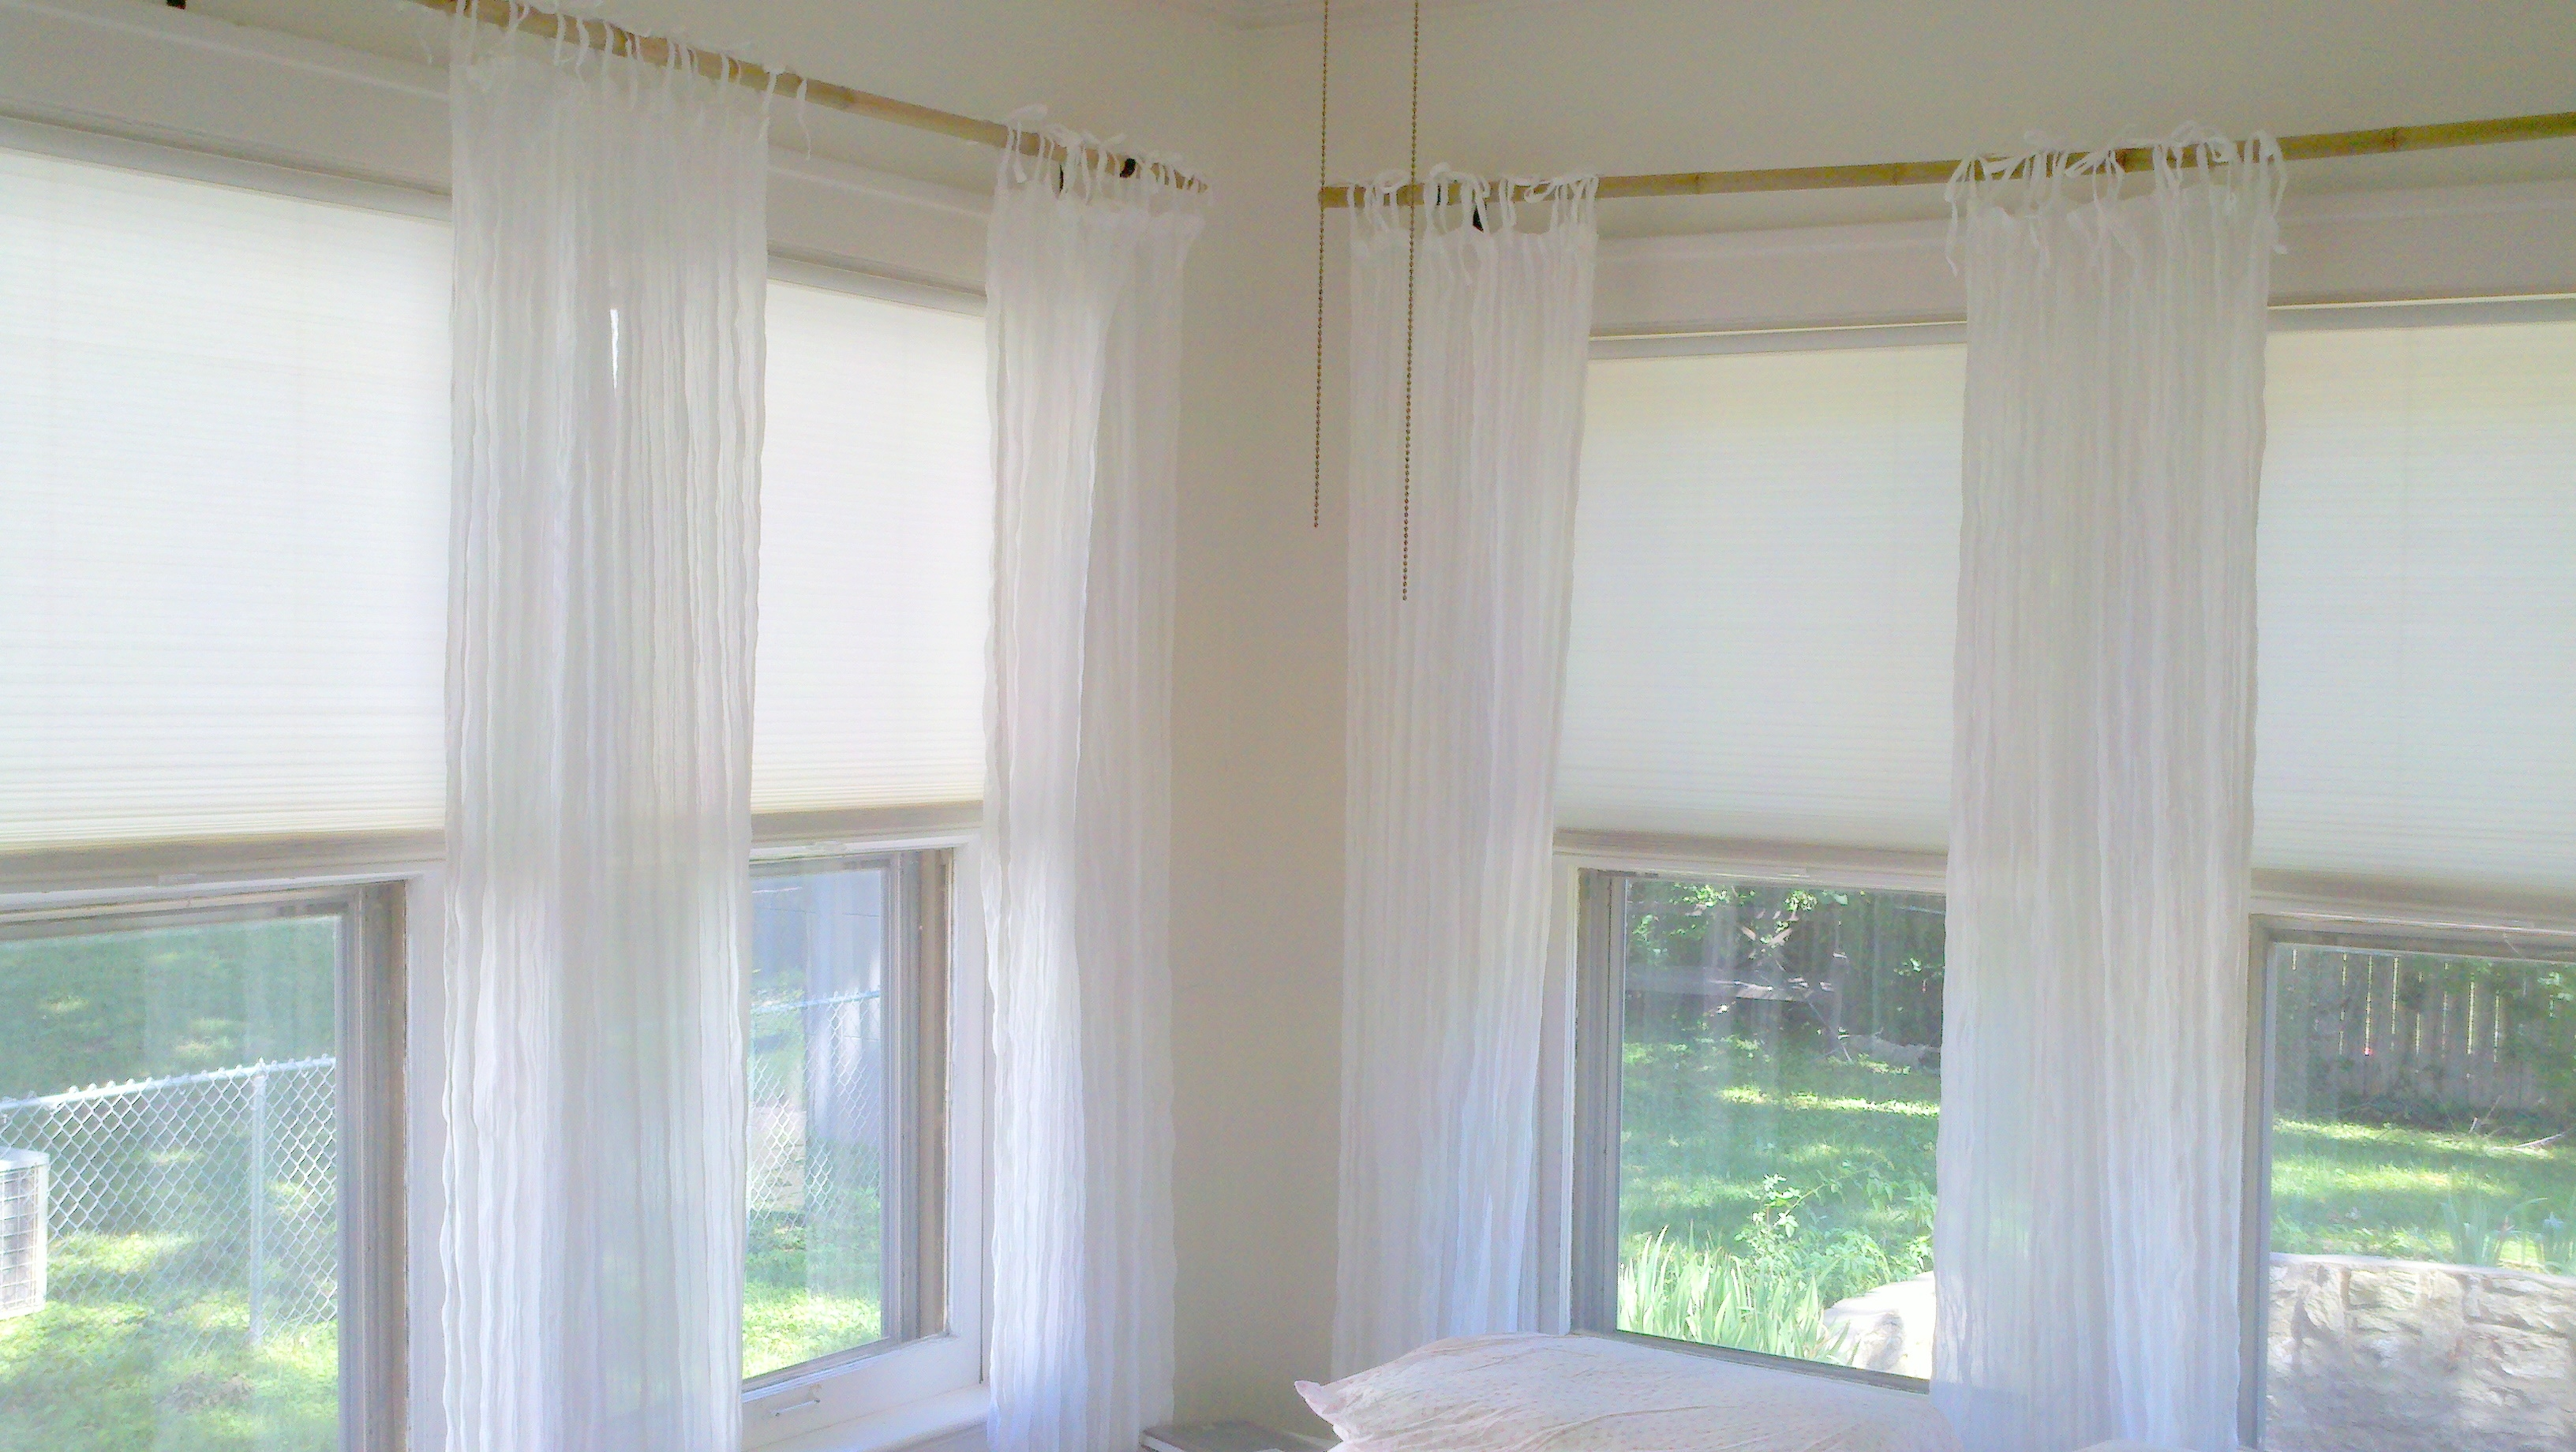 for a valances rods rod large curtains interesting bay b ideas hanging windows file unnamed curtain on gallery window has treatment